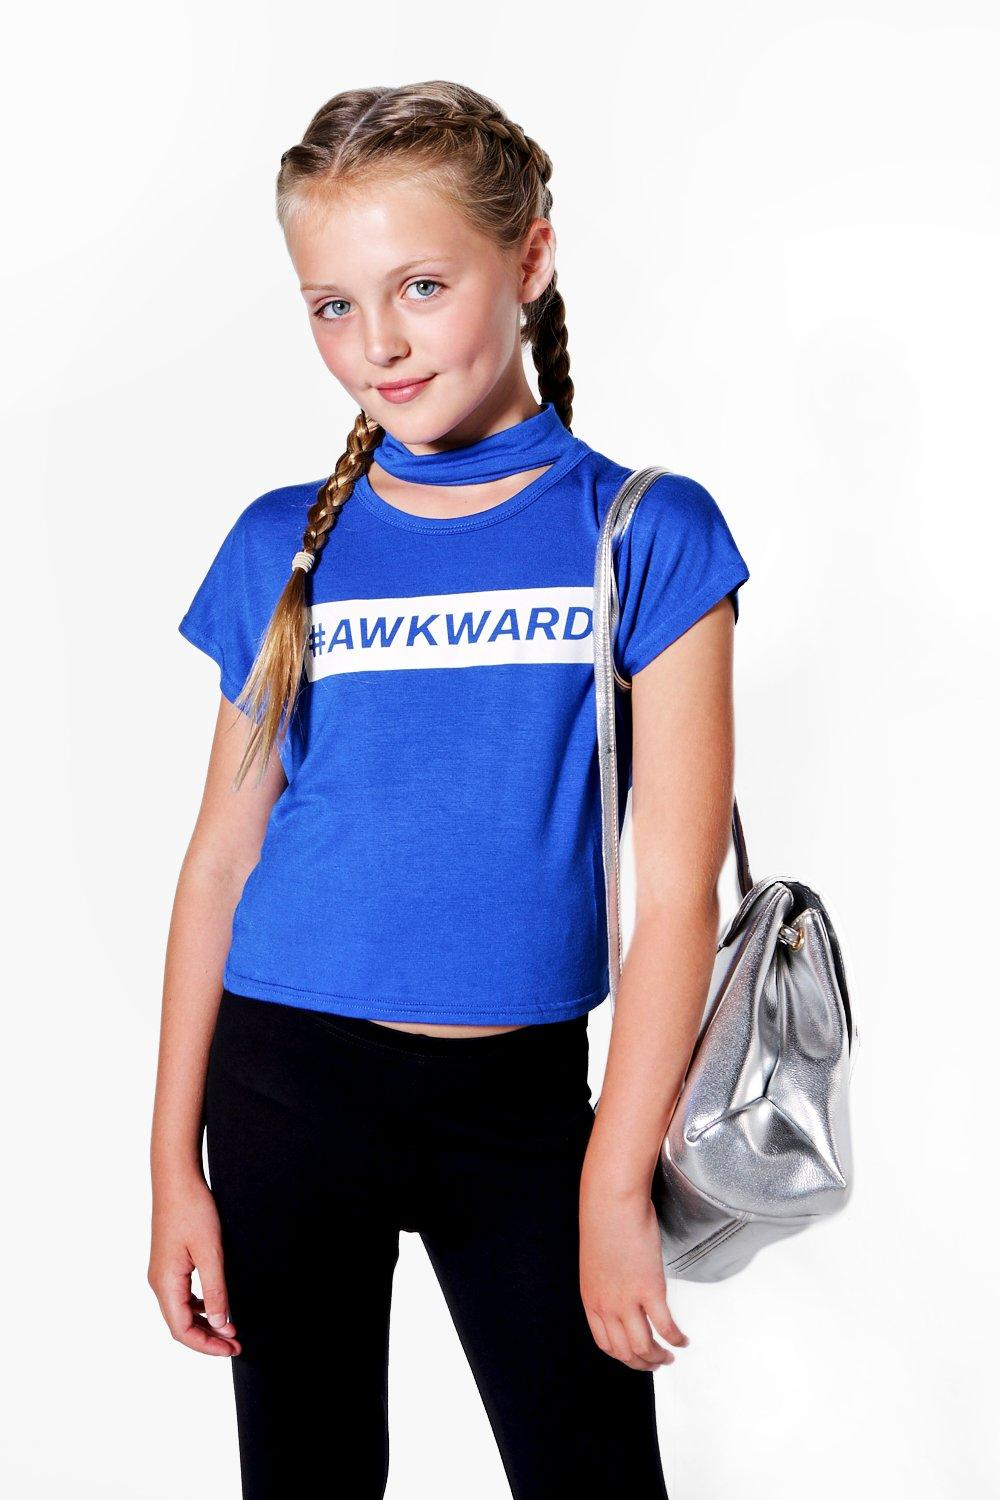 # Awkward Crochet Cropped Tee - cobalt Review thumbnail